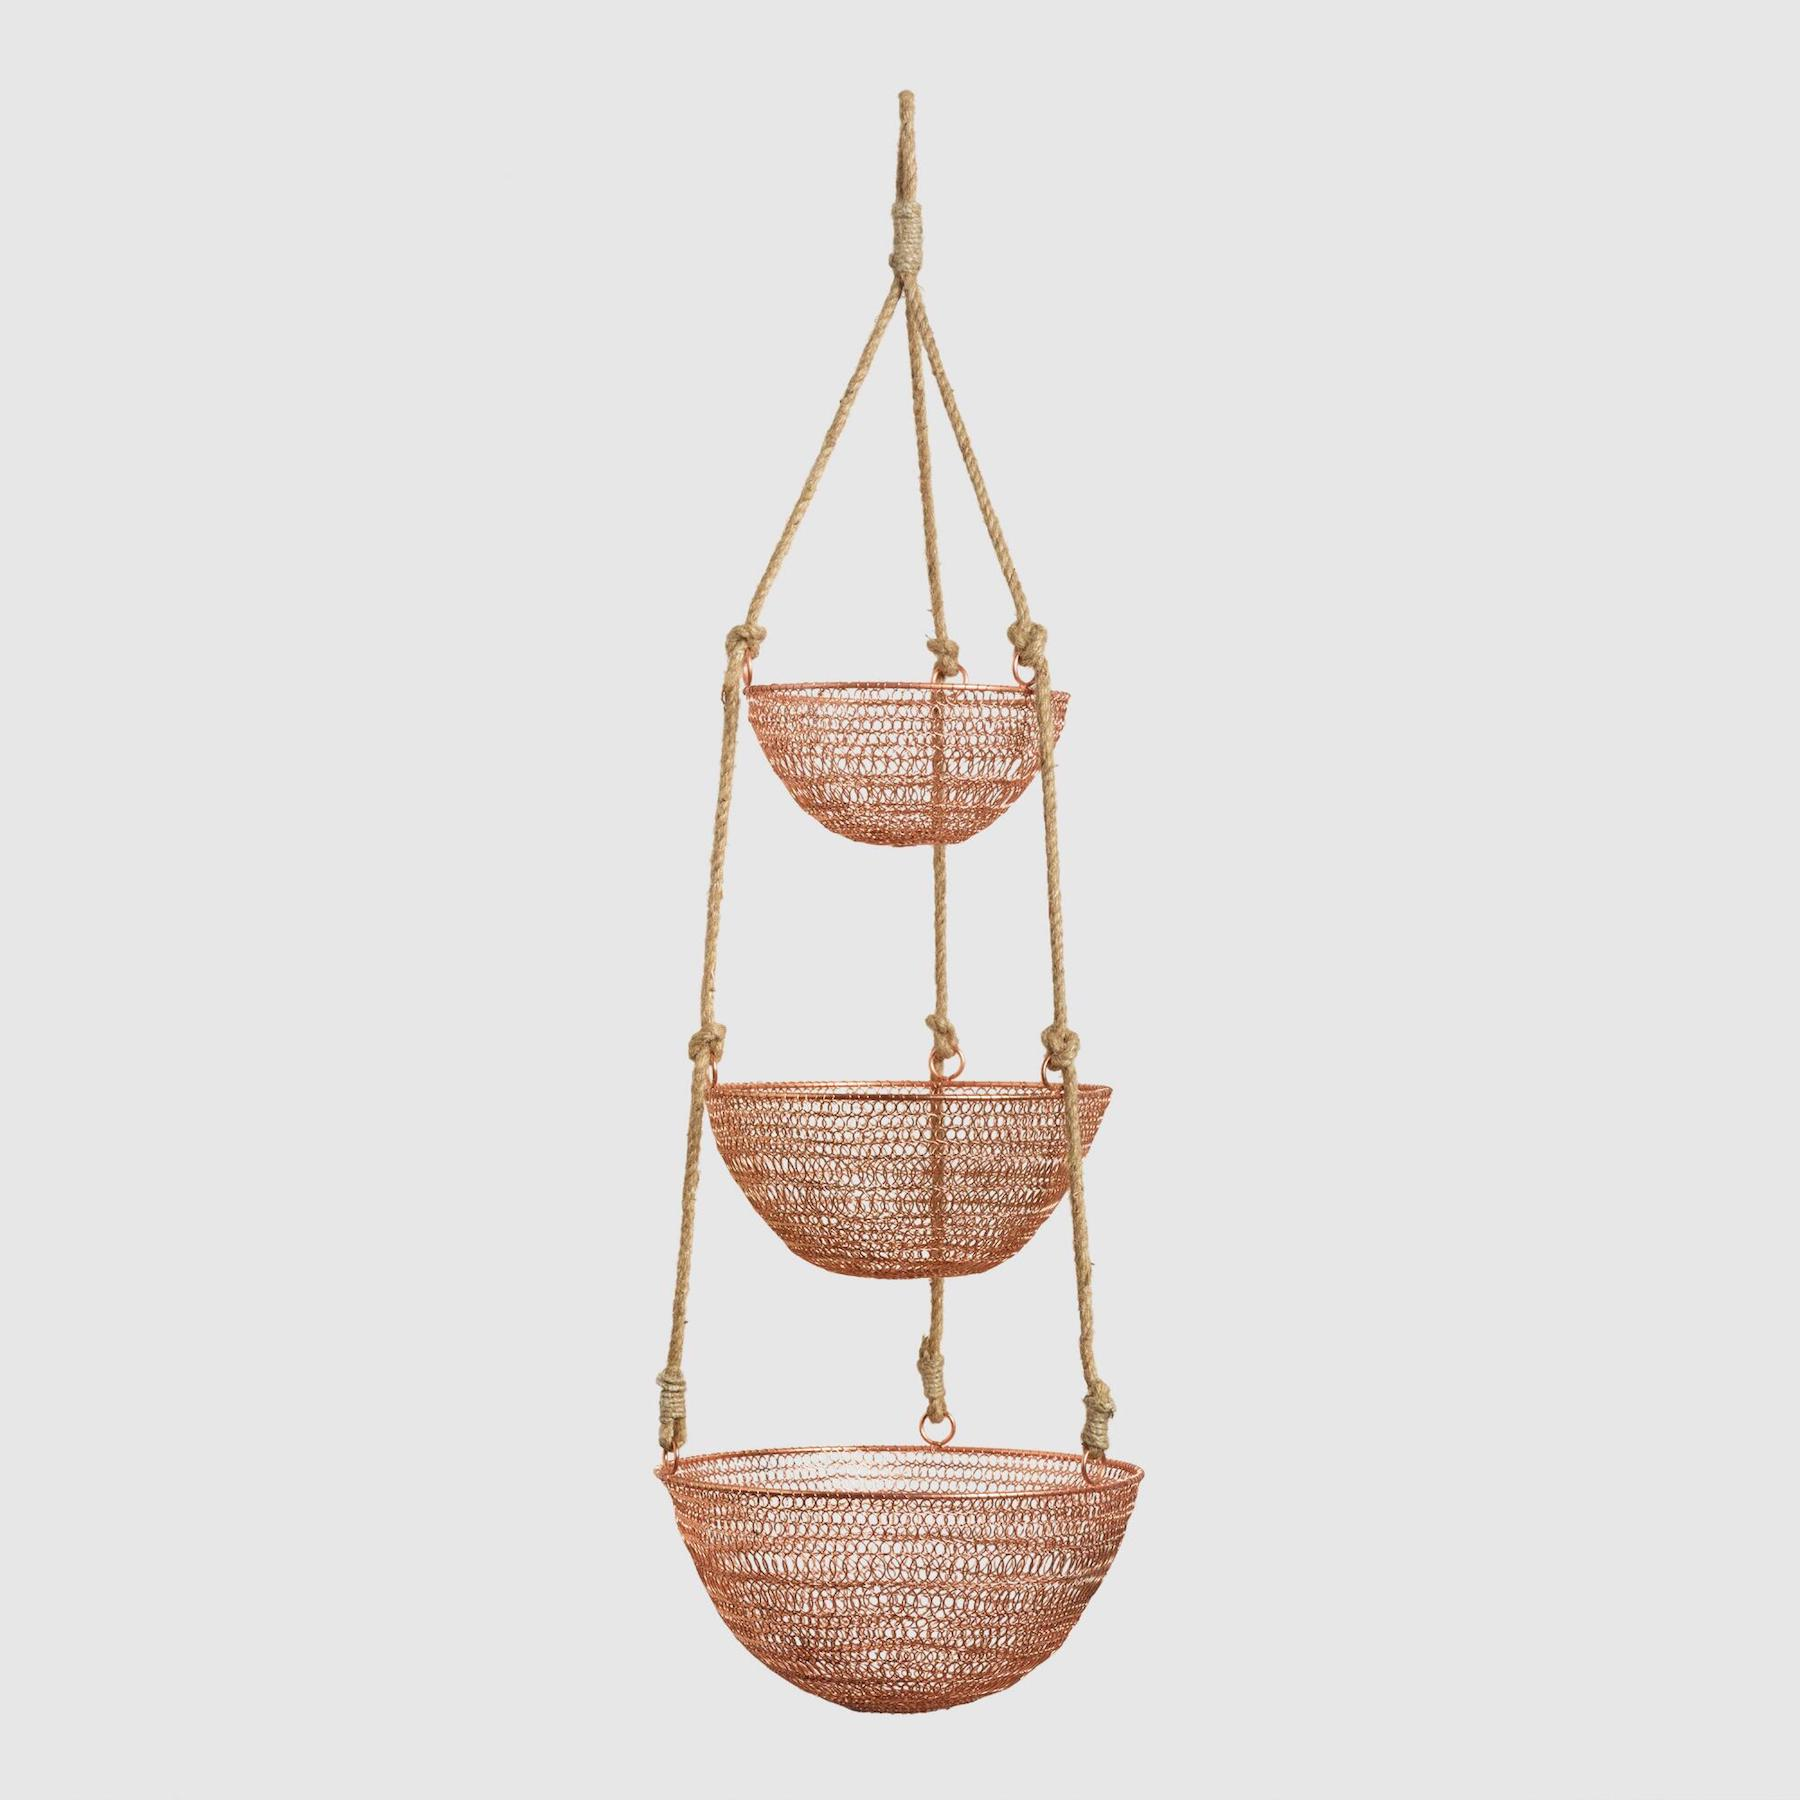 Copper and Rope 3-Tier Hanging Baskets for fruits